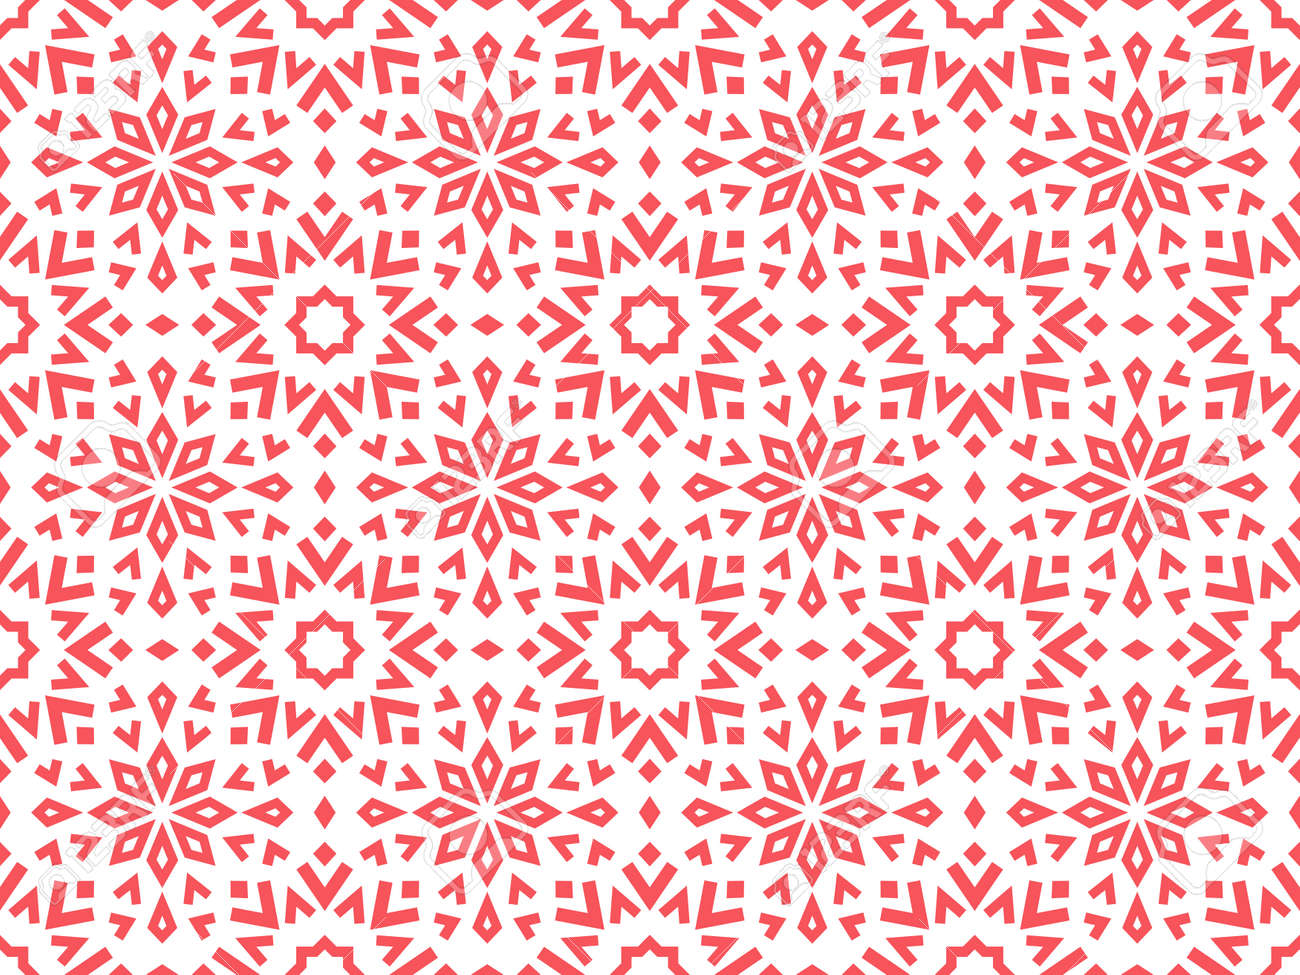 Abstract geometric pattern with lines, snowflakes. A seamless vector background. White and pink texture. Graphic modern pattern - 169878935